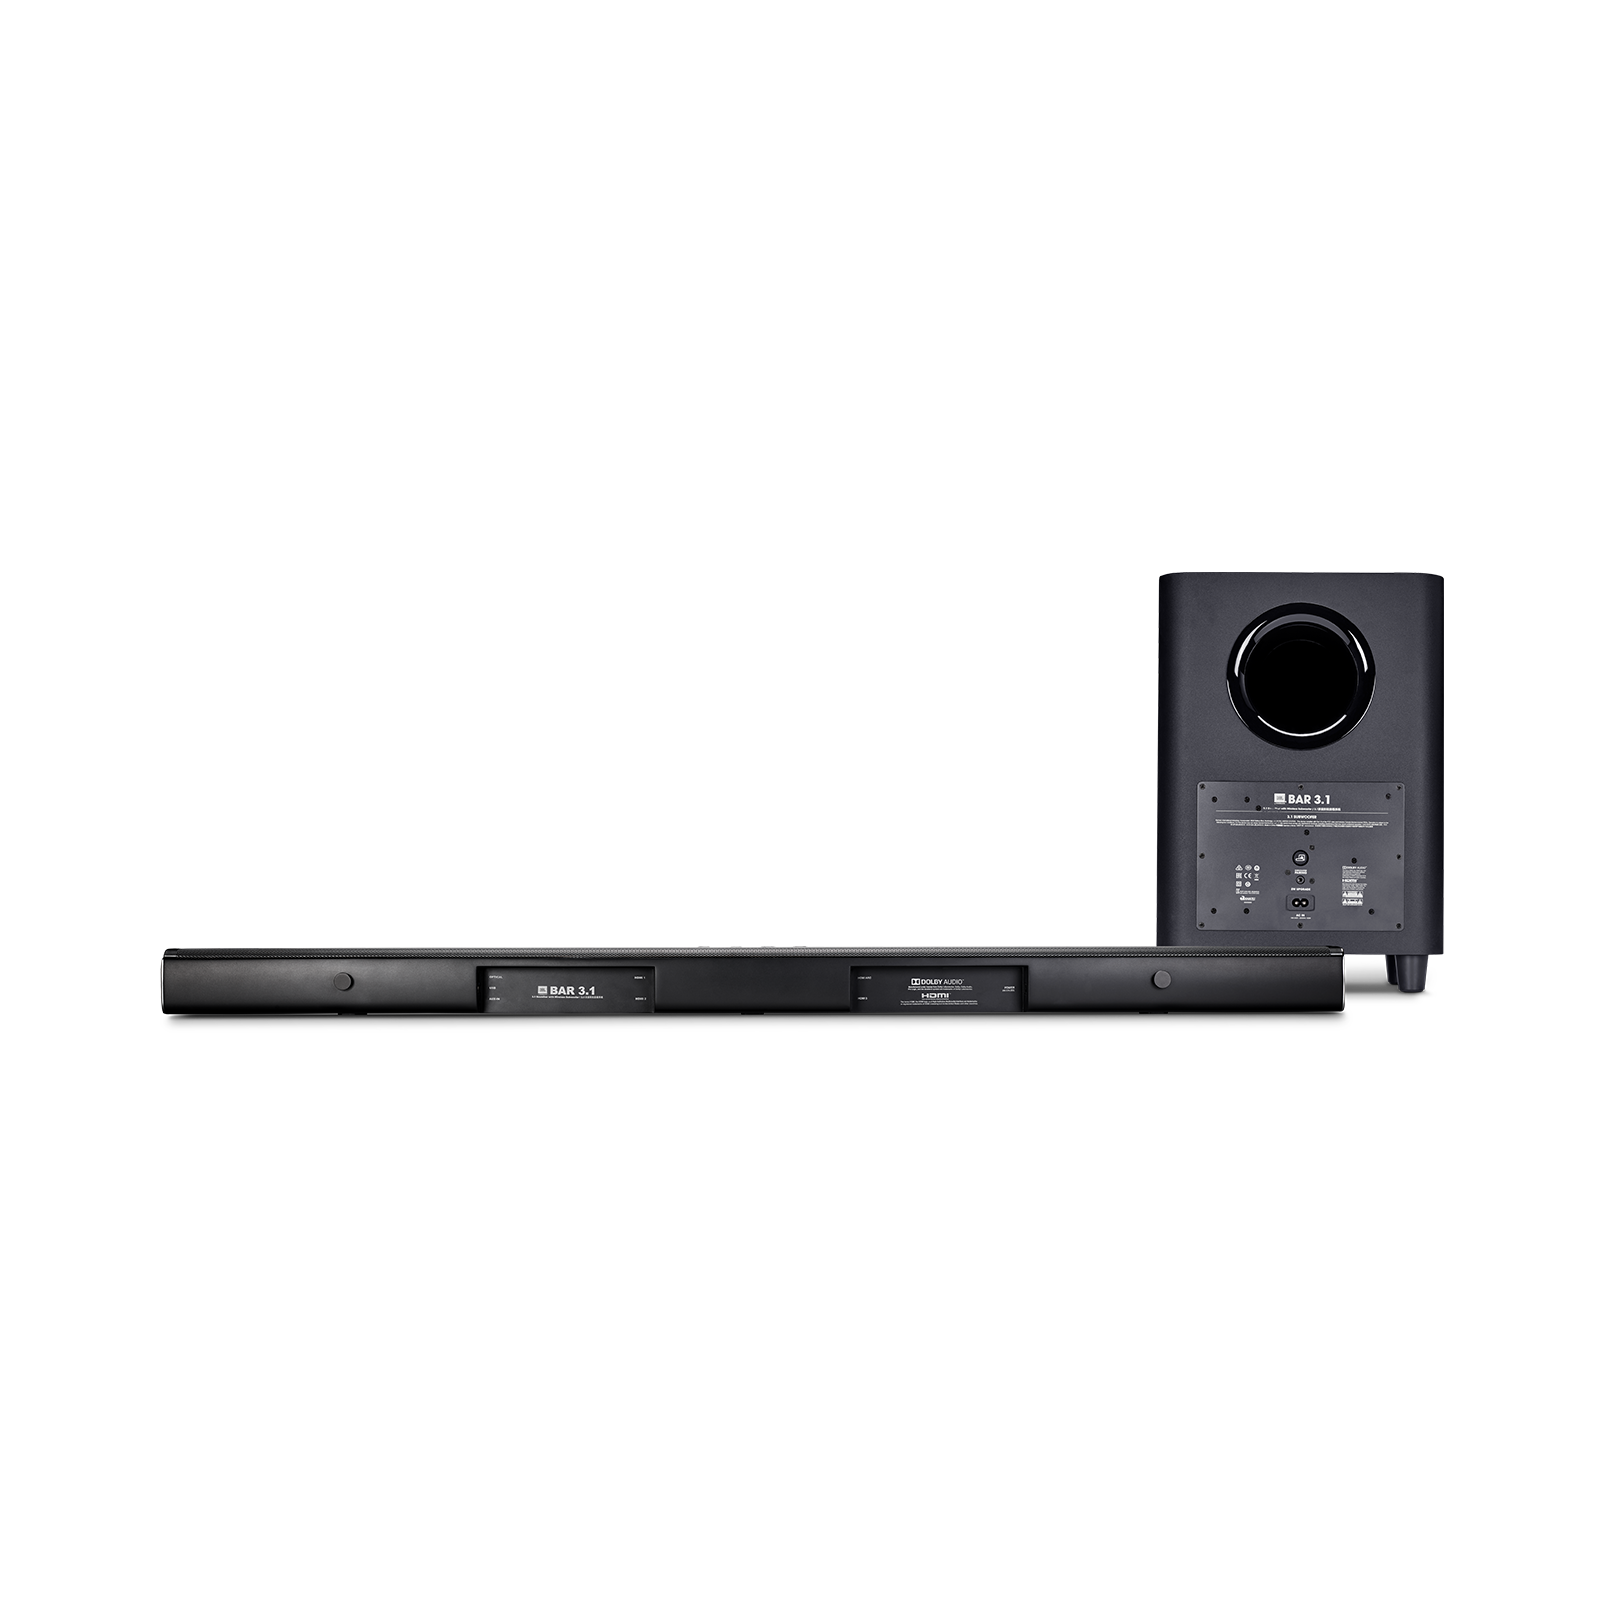 Jbl Bar 31 Channel 4k Ultra Hd Soundbar With Wireless Subwoofer The Remote Control System Has One Mode T You